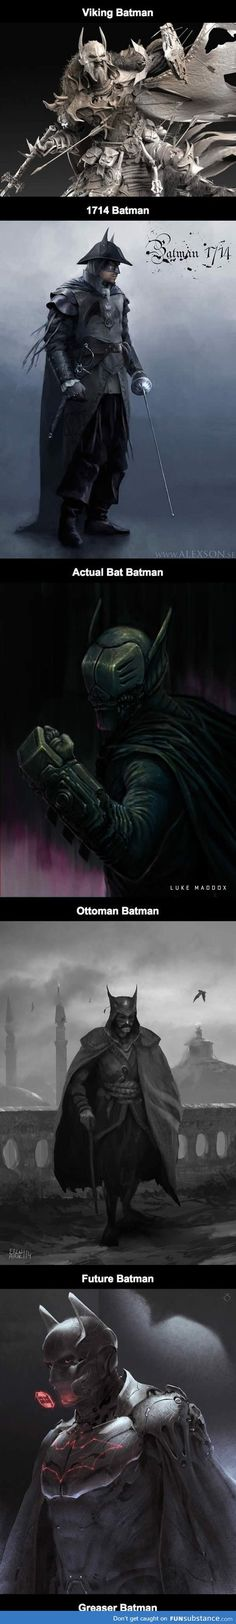 awesome batman fan art